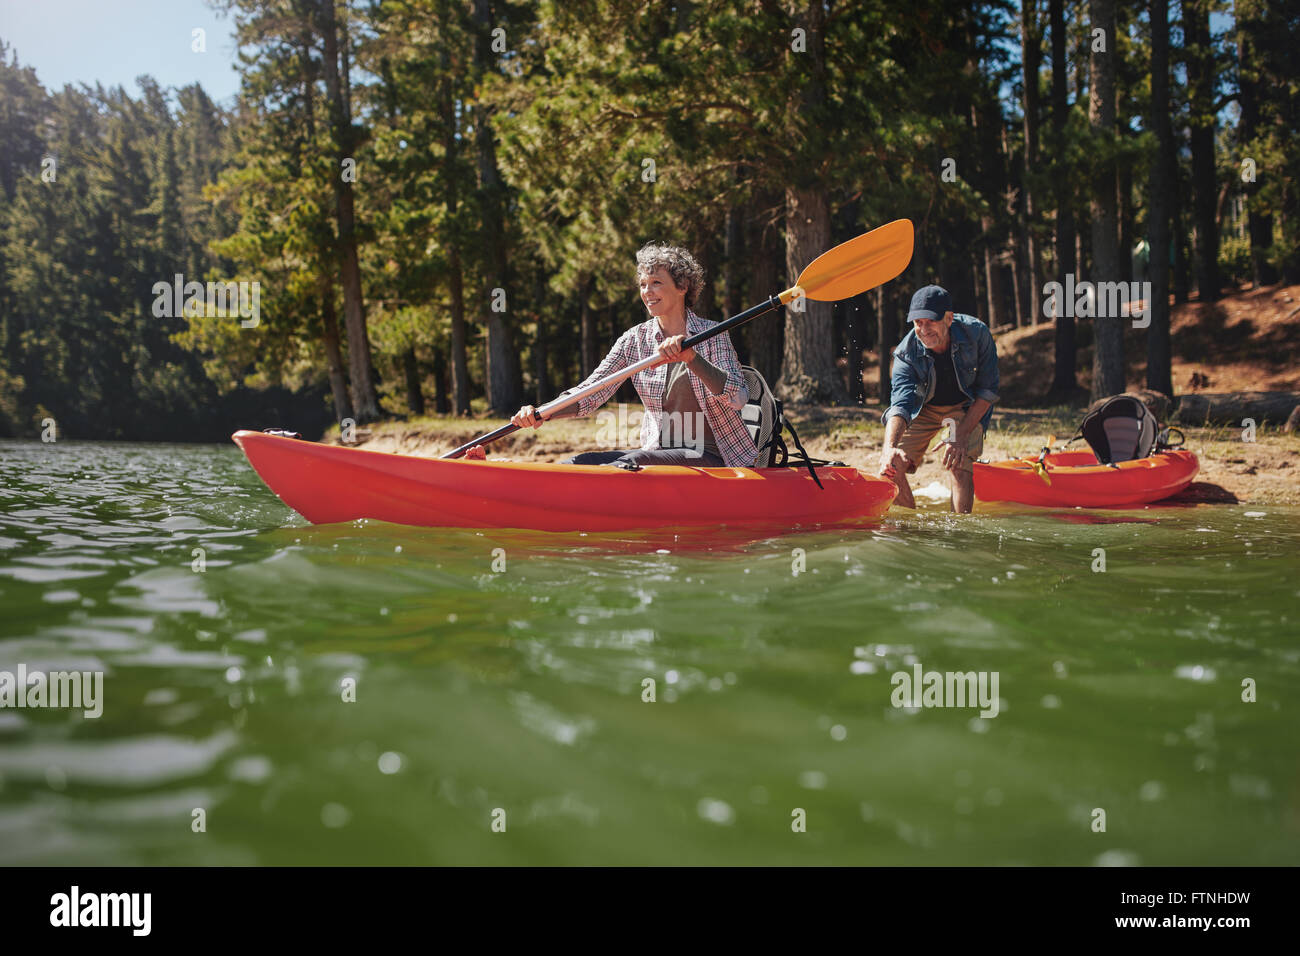 Portrait of mature woman canoeing in the lake with man about to catch the kayak from behind. Senior couple having - Stock Image